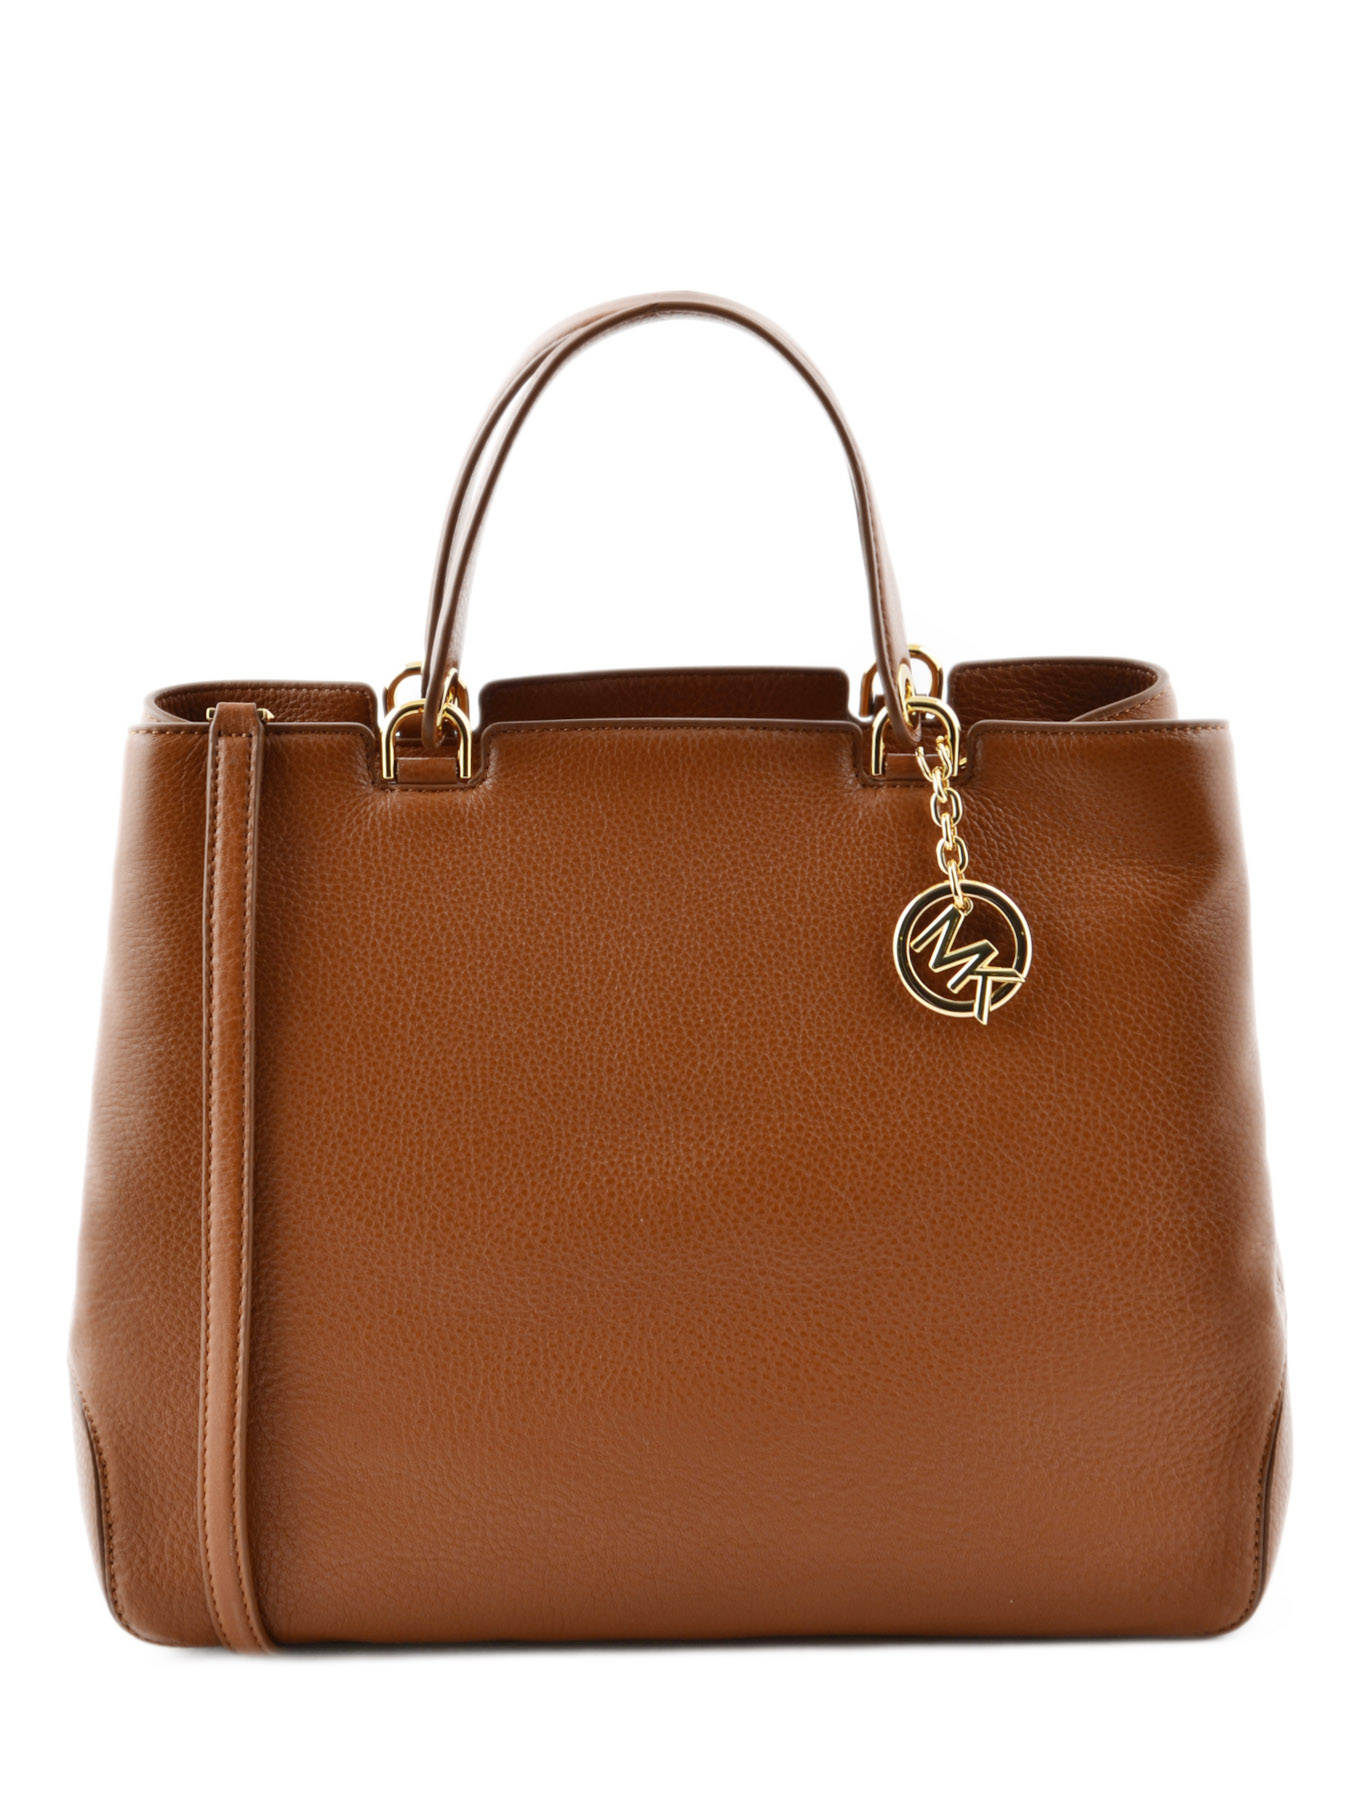 Anabelle Michael Kors Bag Anabelle Best Prices